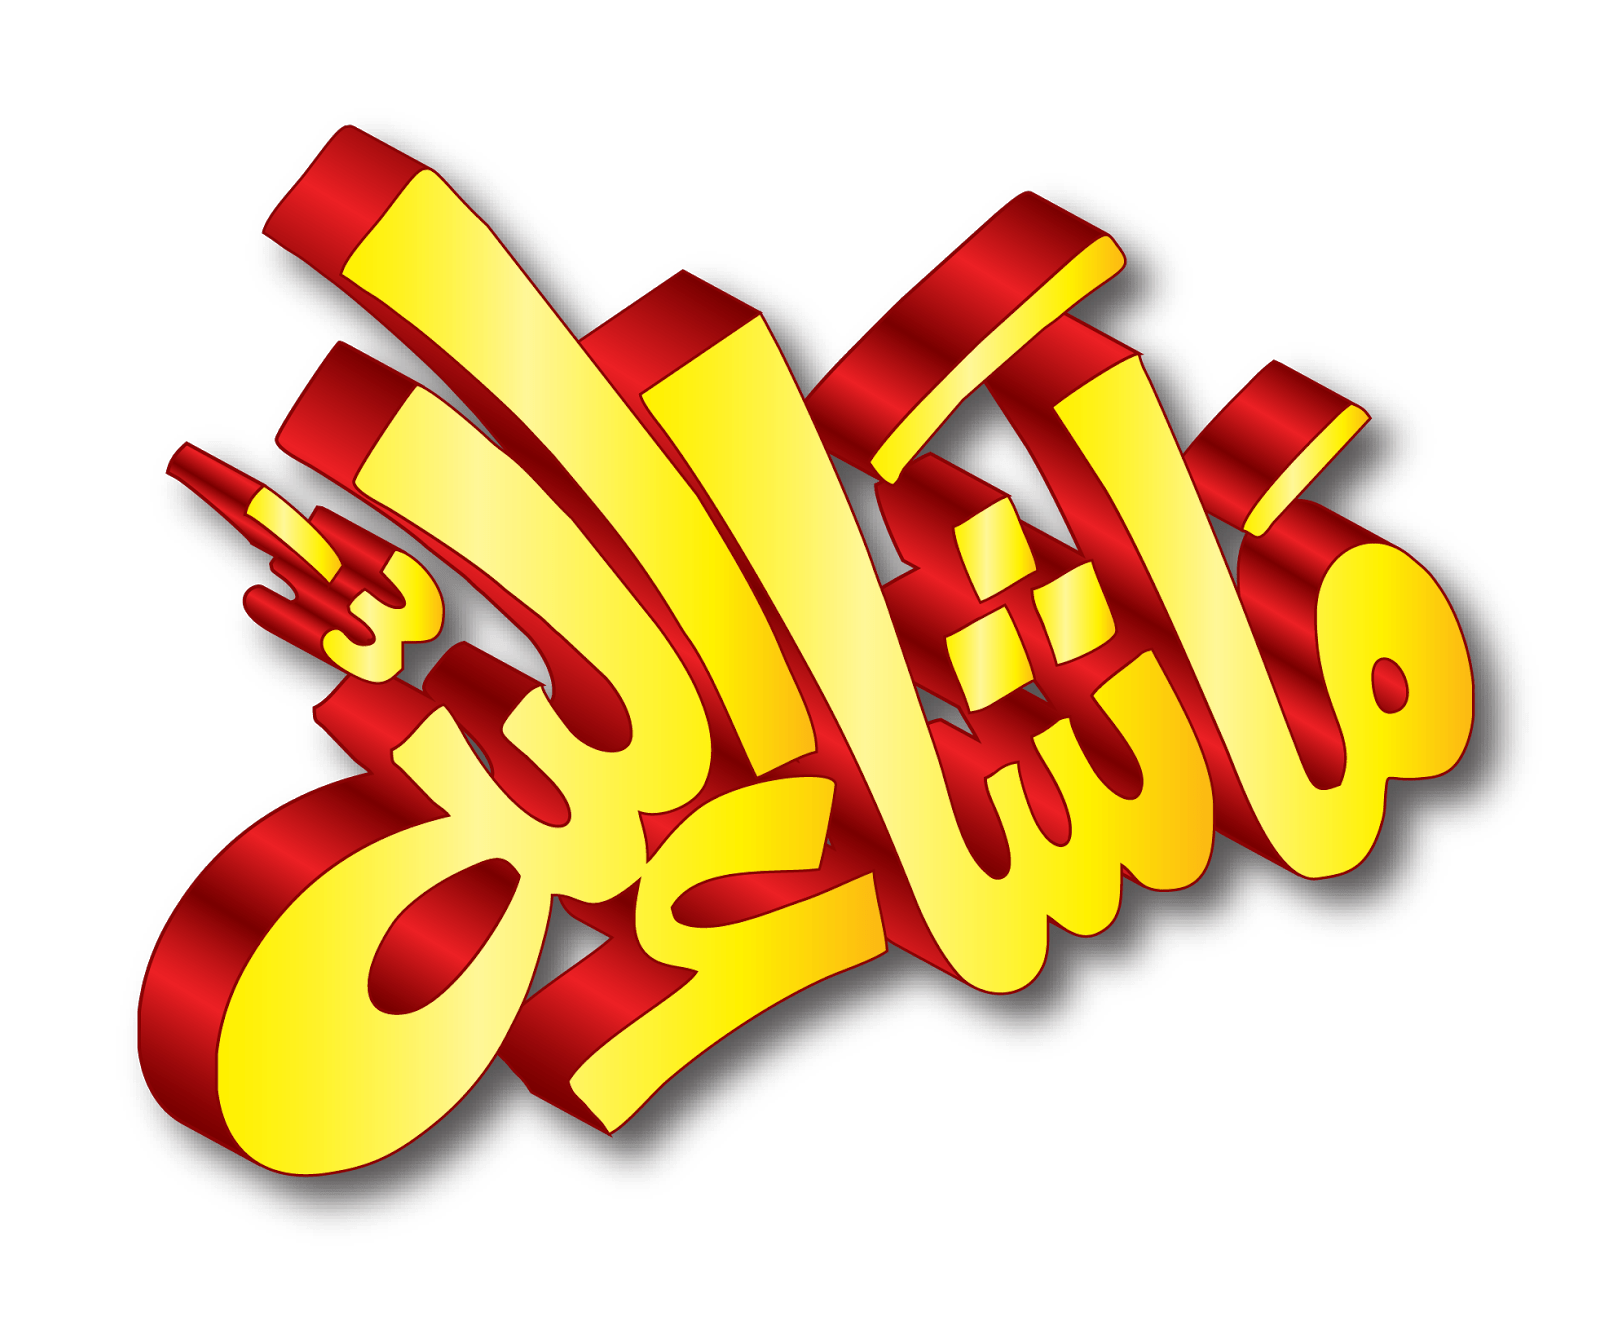 Car Wallpapers Hd 2013 Free Download Masha Allah Png Transparent Masha Allah Png Images Pluspng